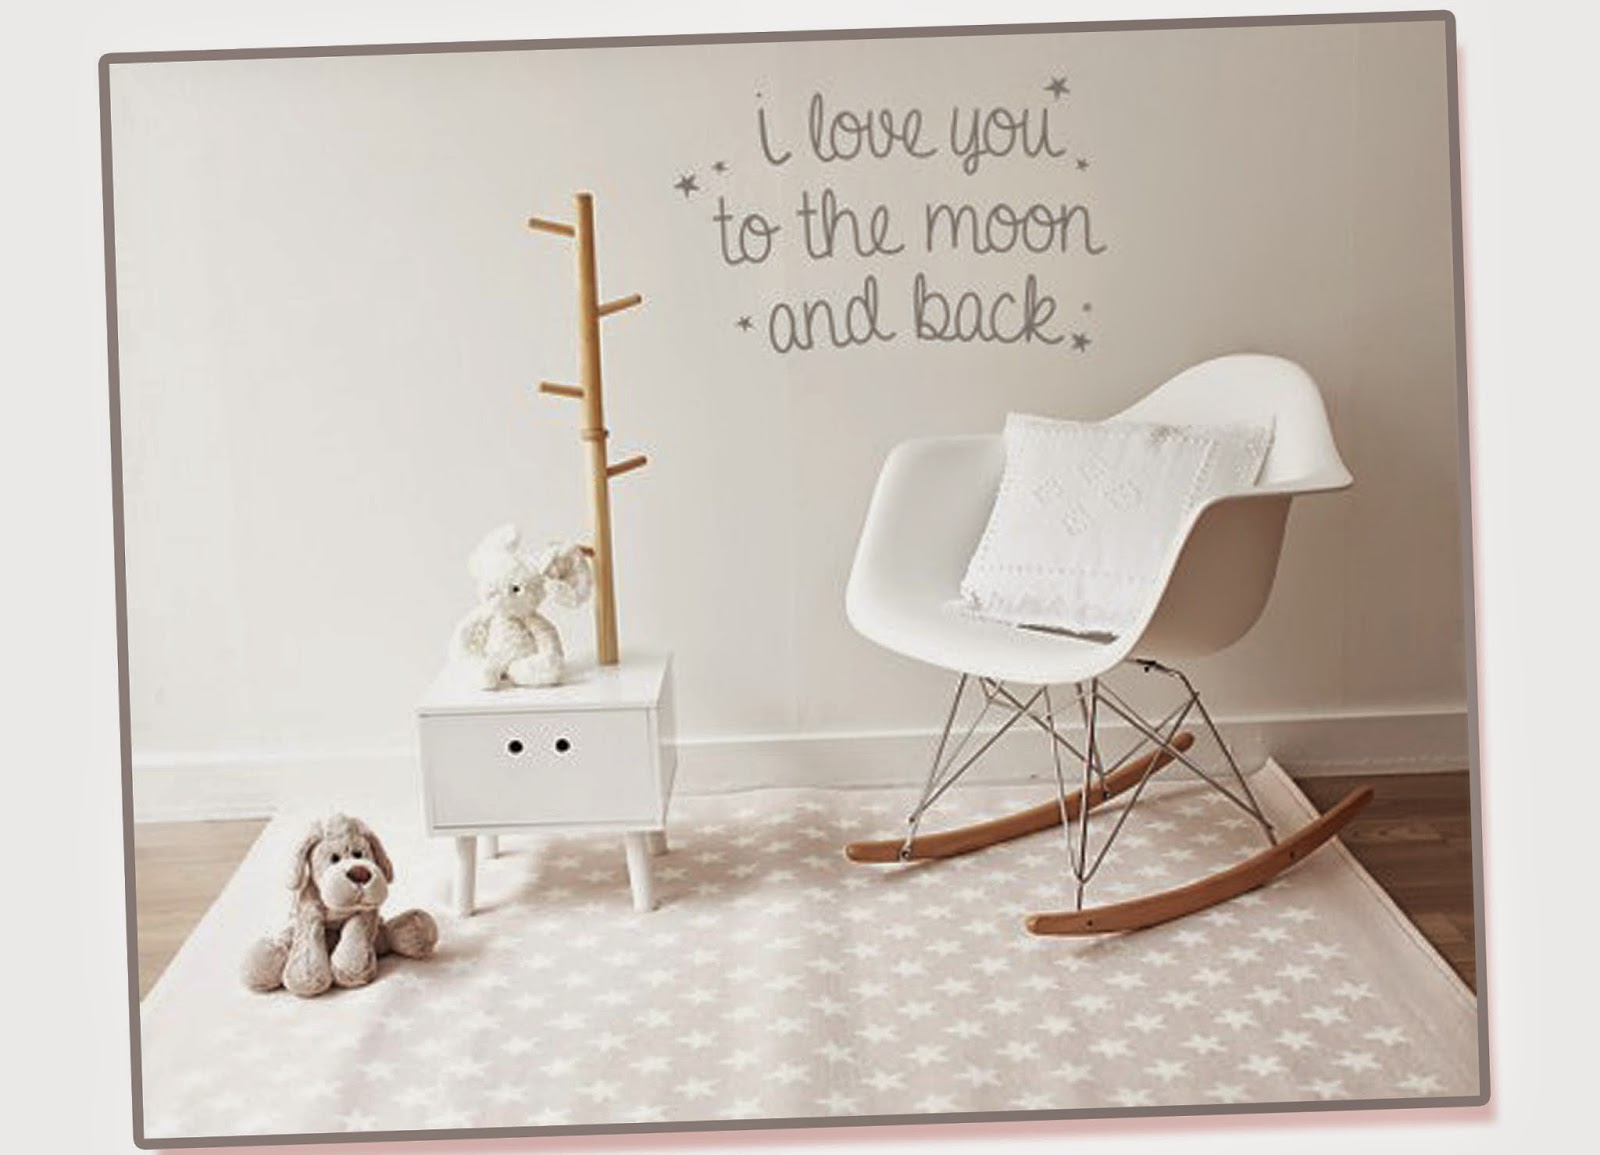 photo-vinilo-pared-deco-kenay-home-love-moon-back